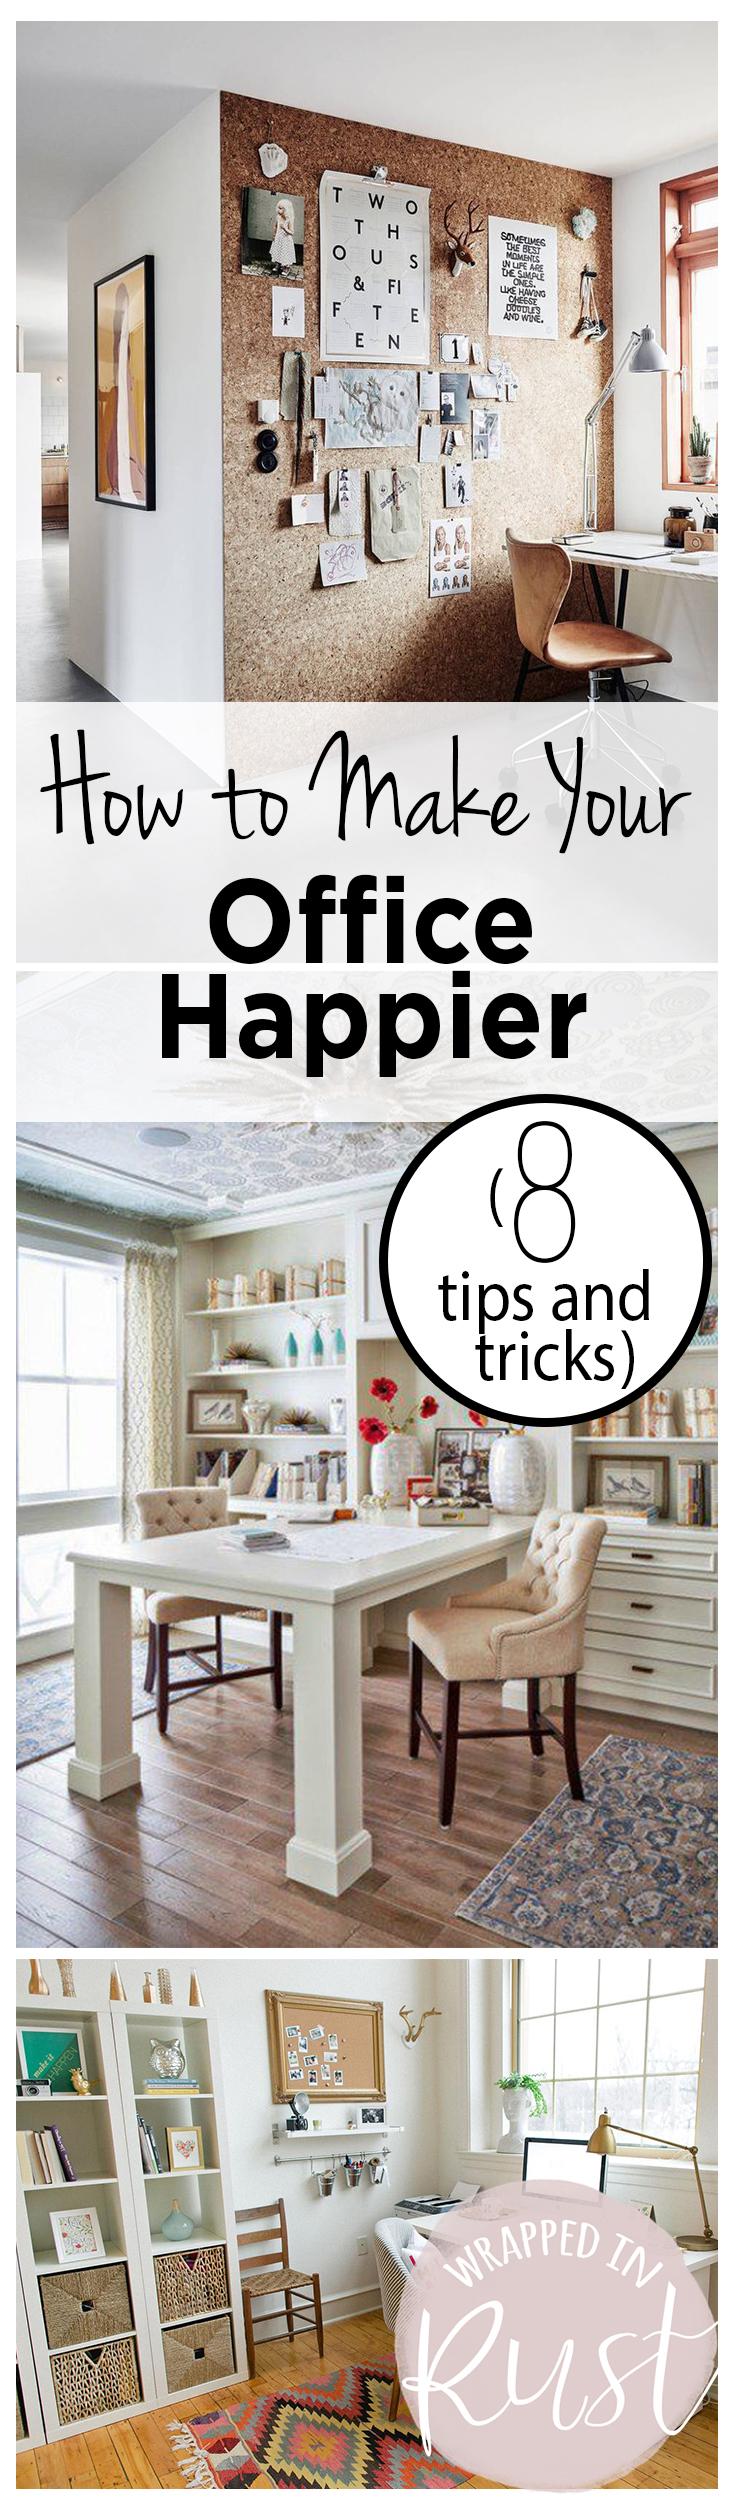 How to Make Your Office Happier (8 Tips and Tricks) - Wrapped in Rust